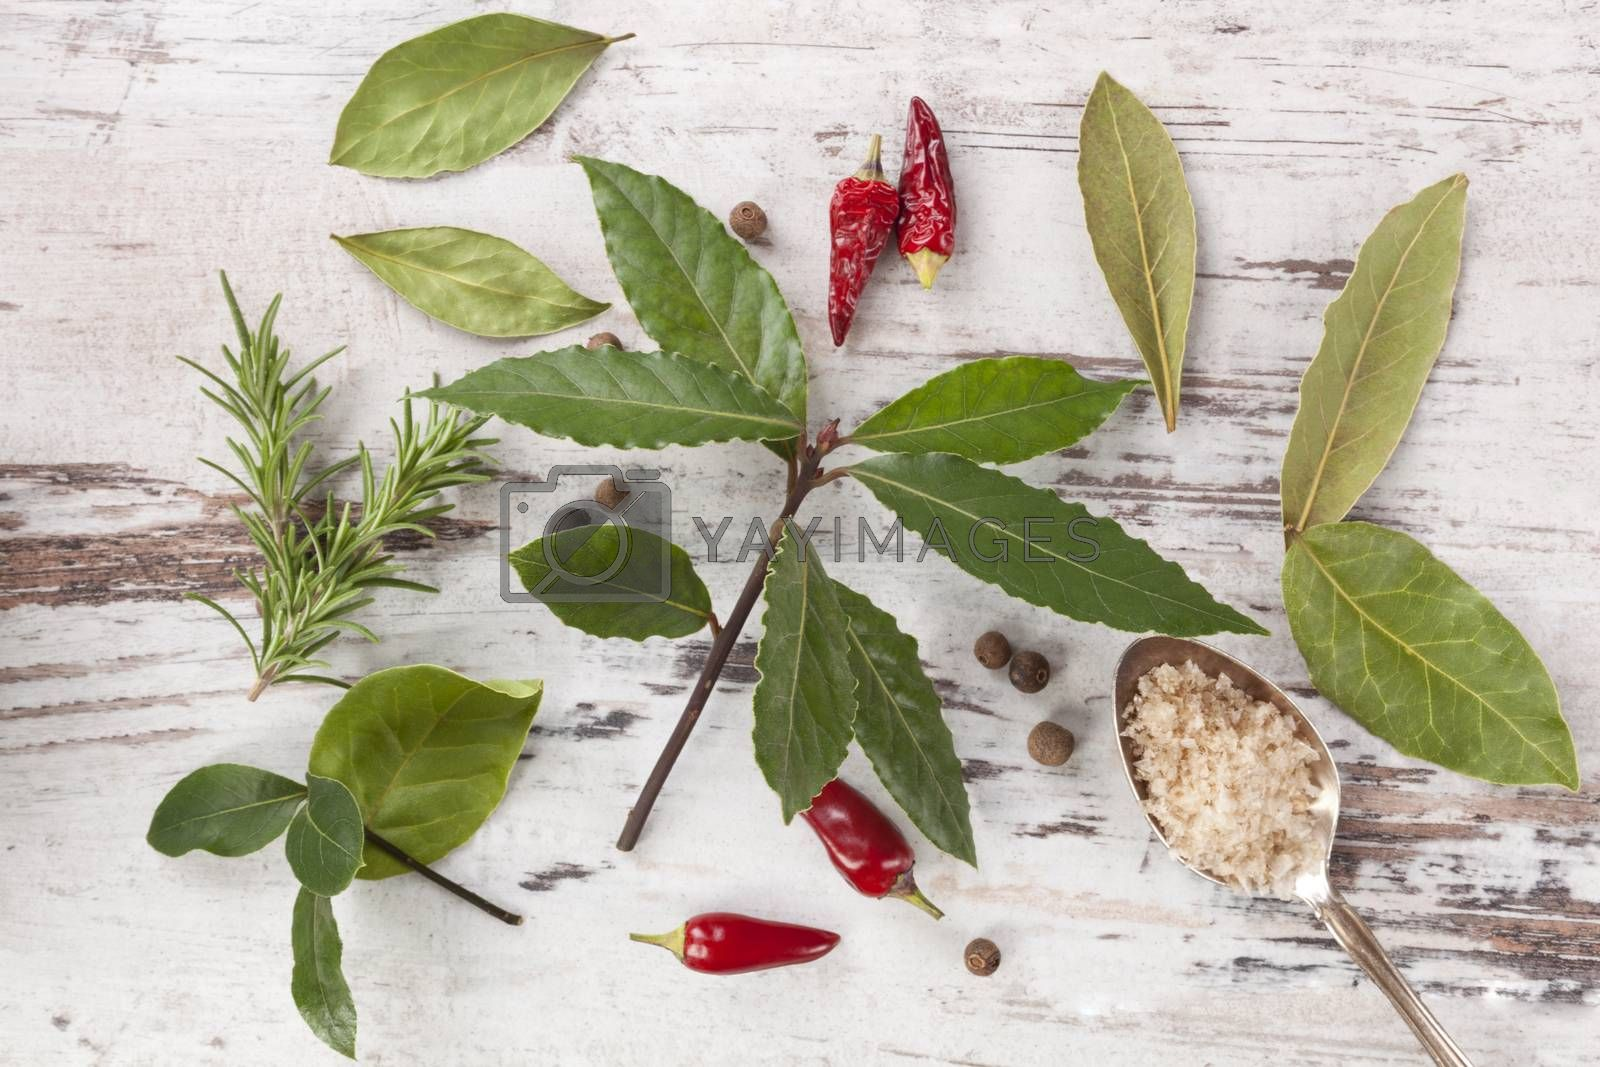 Bay leaves, traditional spice and condiment on white wooden background. Bay leaves, rosemary, chillies and black pepper on white wooden table, top view.